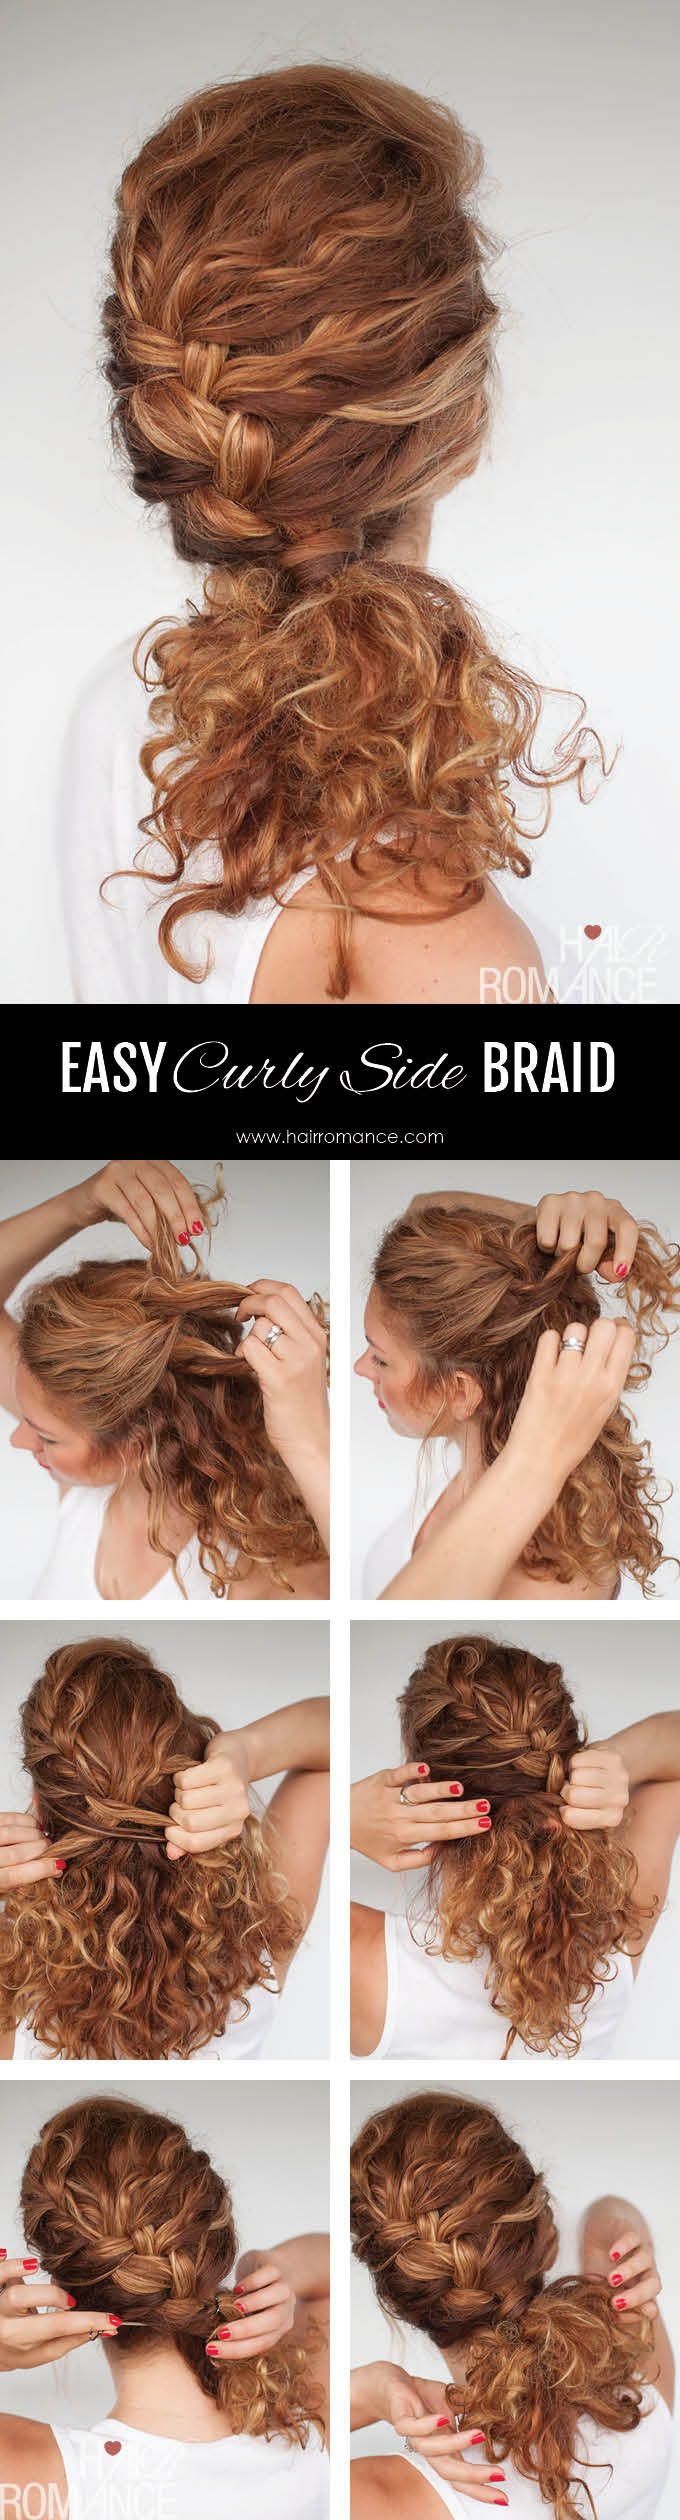 Superb 1000 Ideas About Easy Curly Hairstyles On Pinterest Hair Tricks Hairstyle Inspiration Daily Dogsangcom